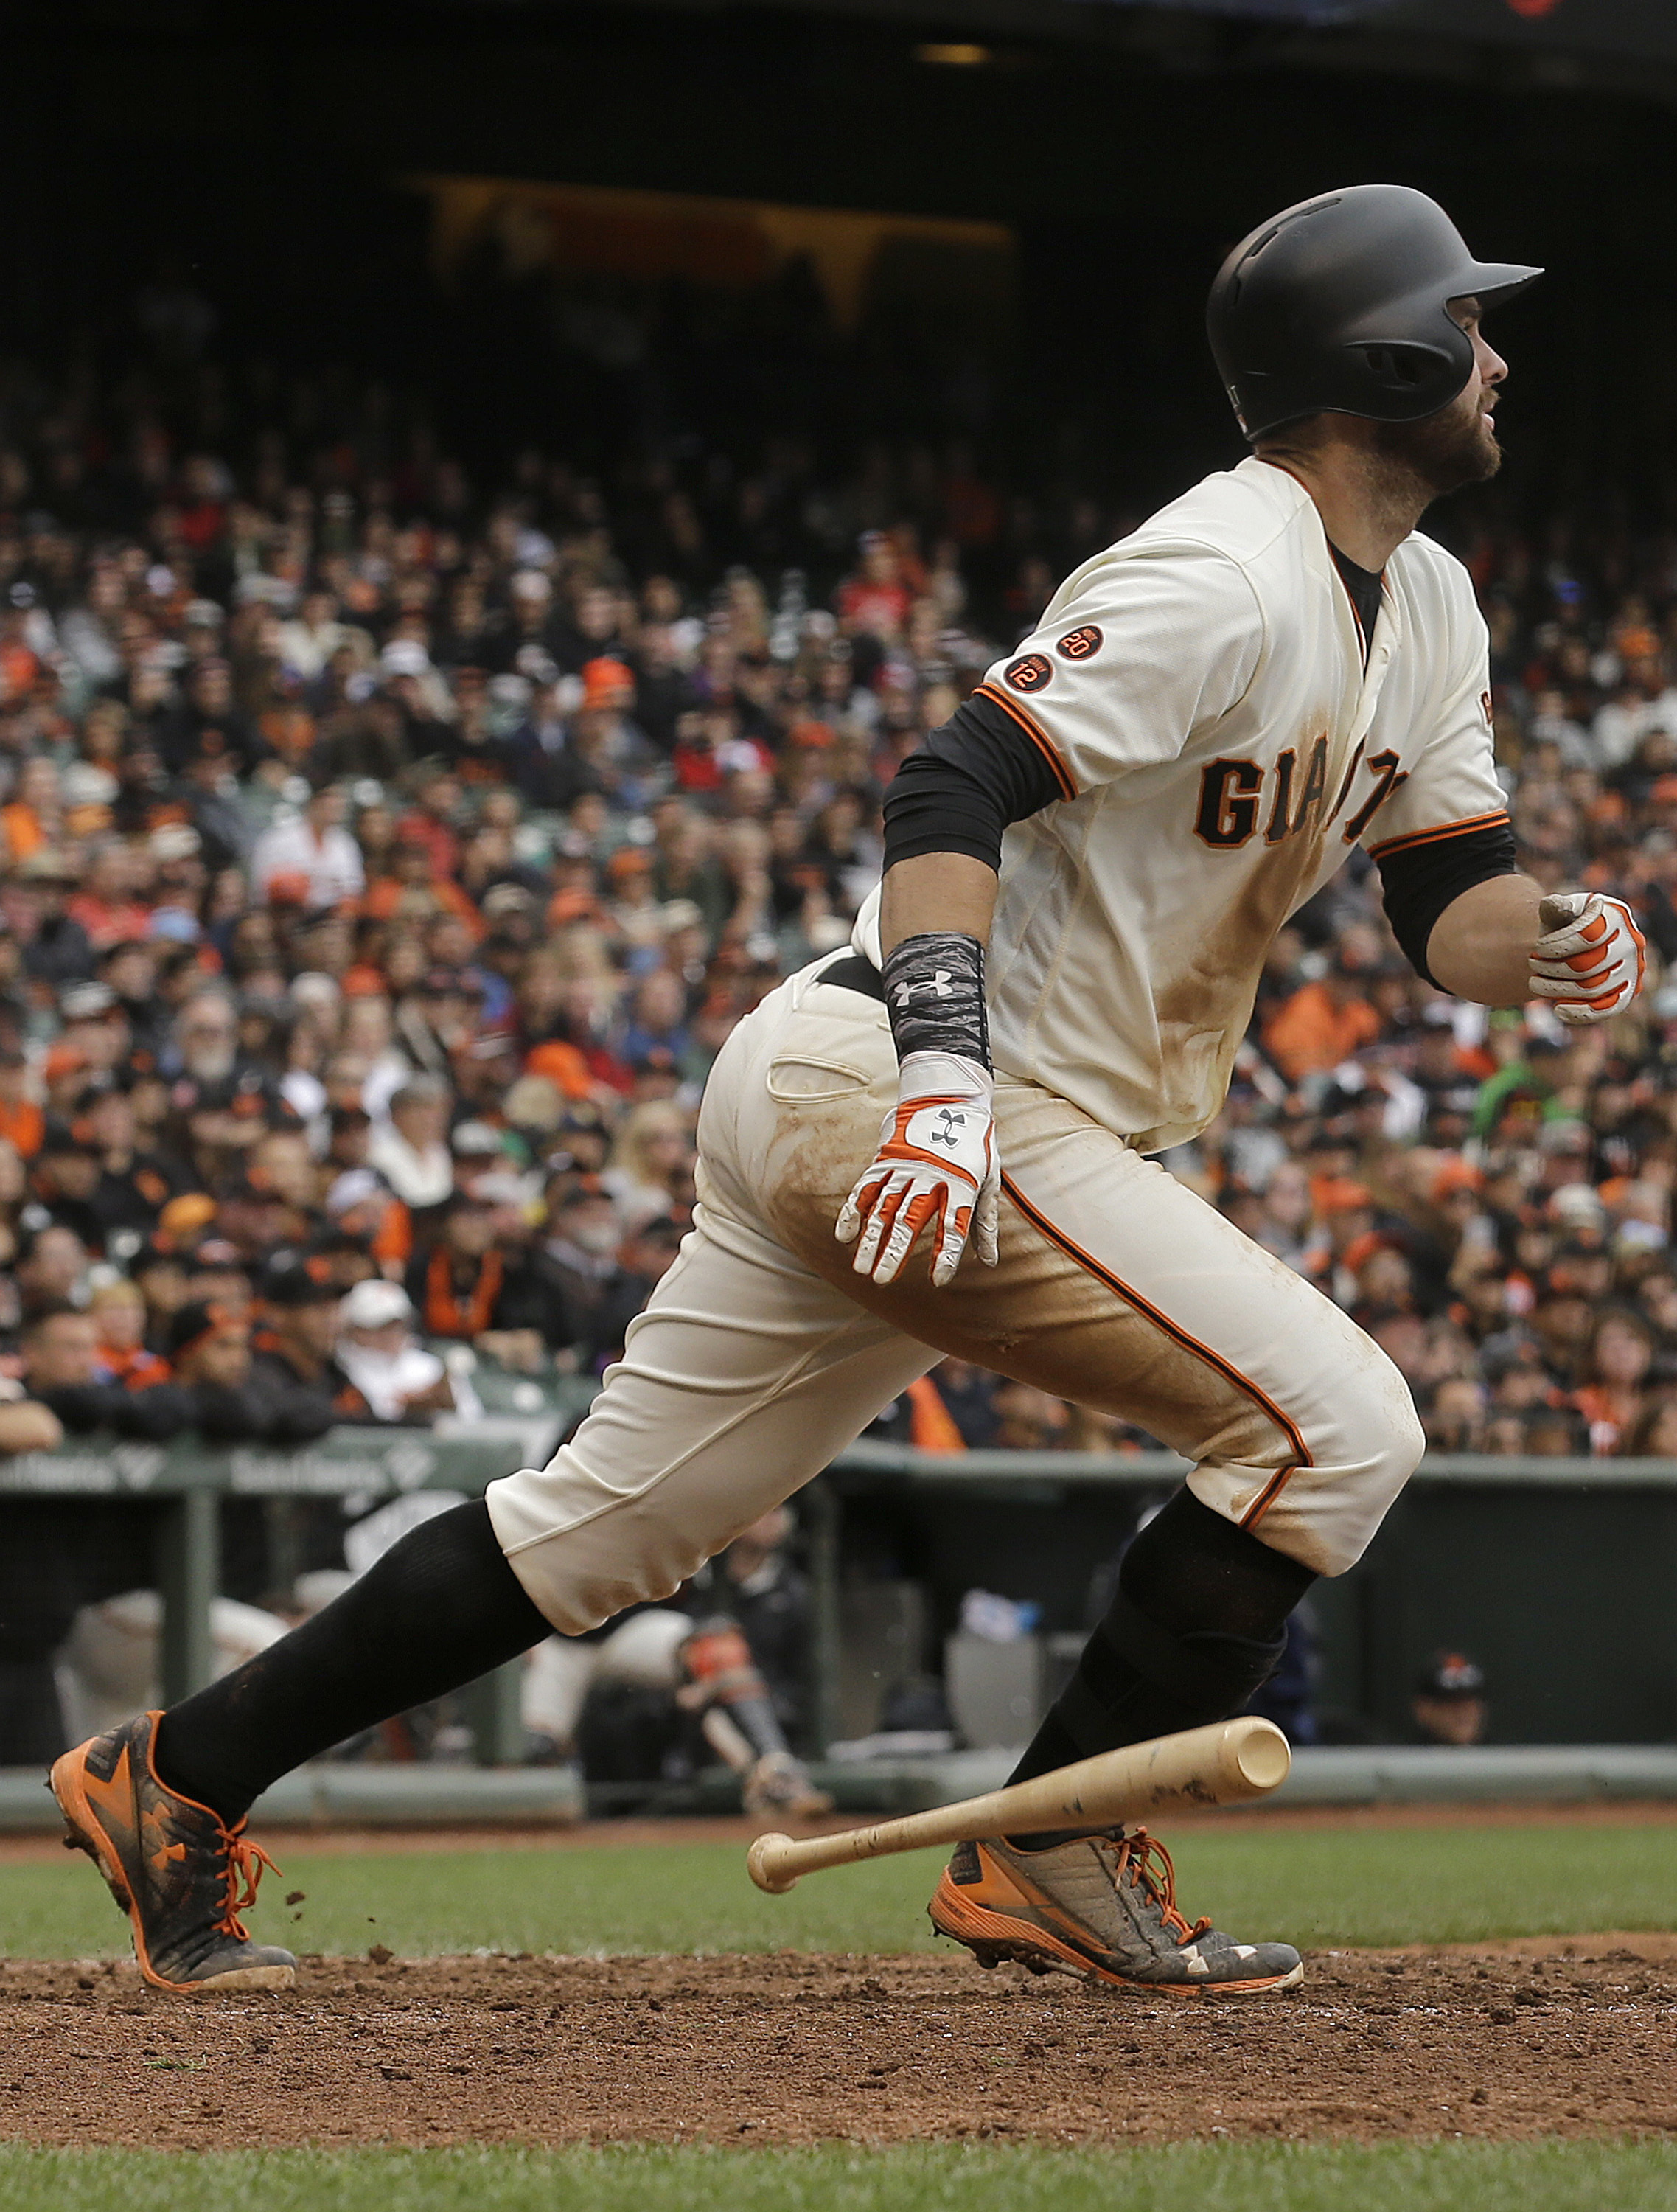 San Francisco Giants' Brandon Belt hits a triple against the Colorado Rockies during the tenth inning of a baseball game in San Francisco, Saturday, May 7, 2016. (AP Photo/Jeff Chiu)